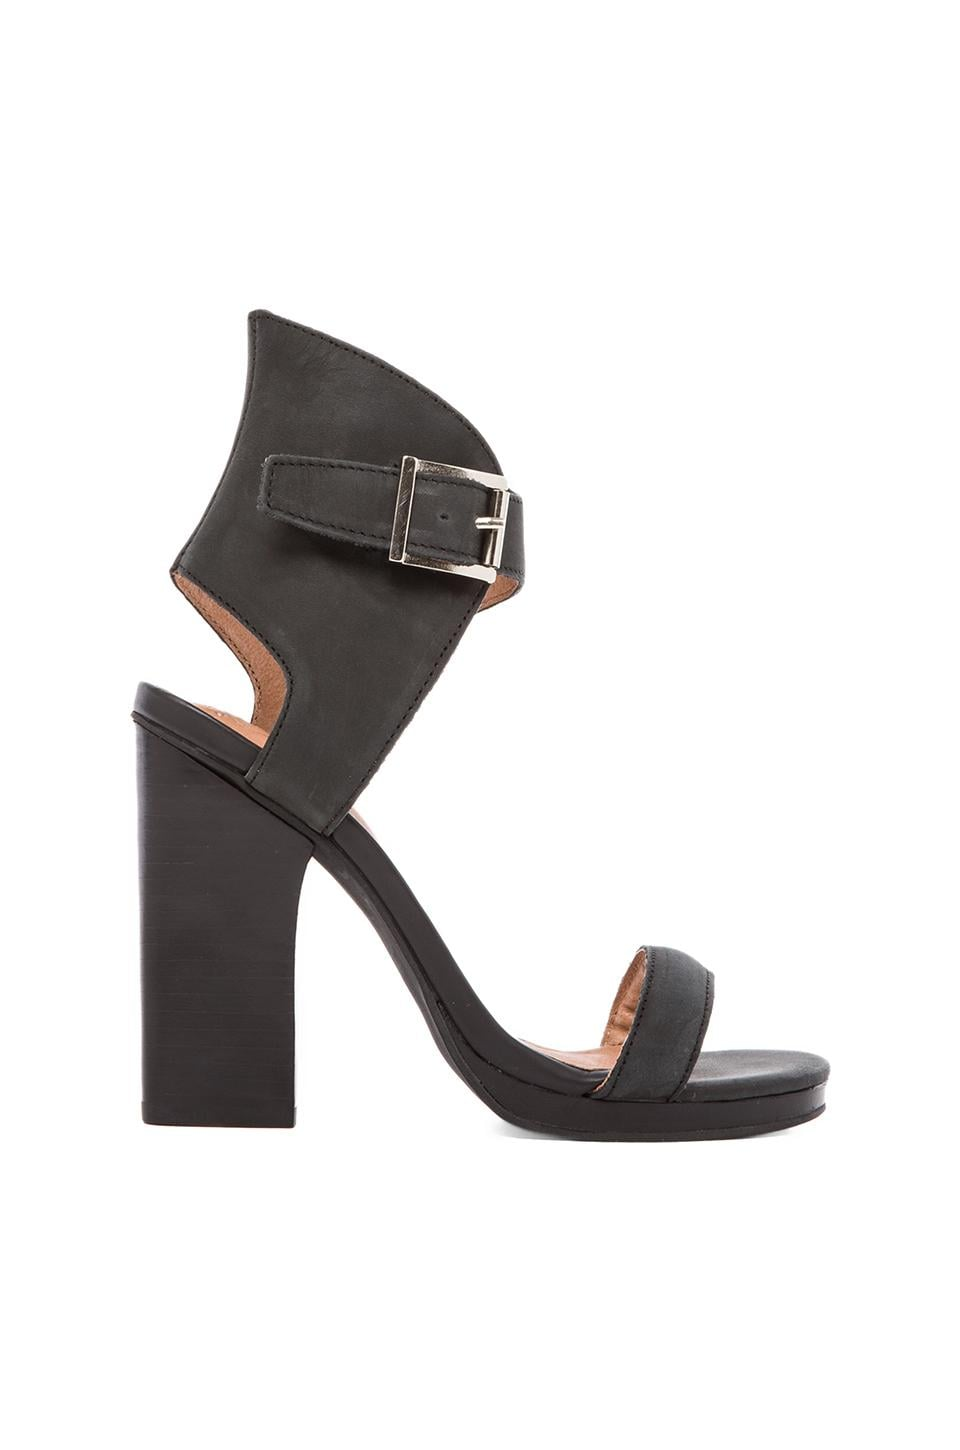 Jeffrey Campbell Shindig Heel in Black Washed Leather